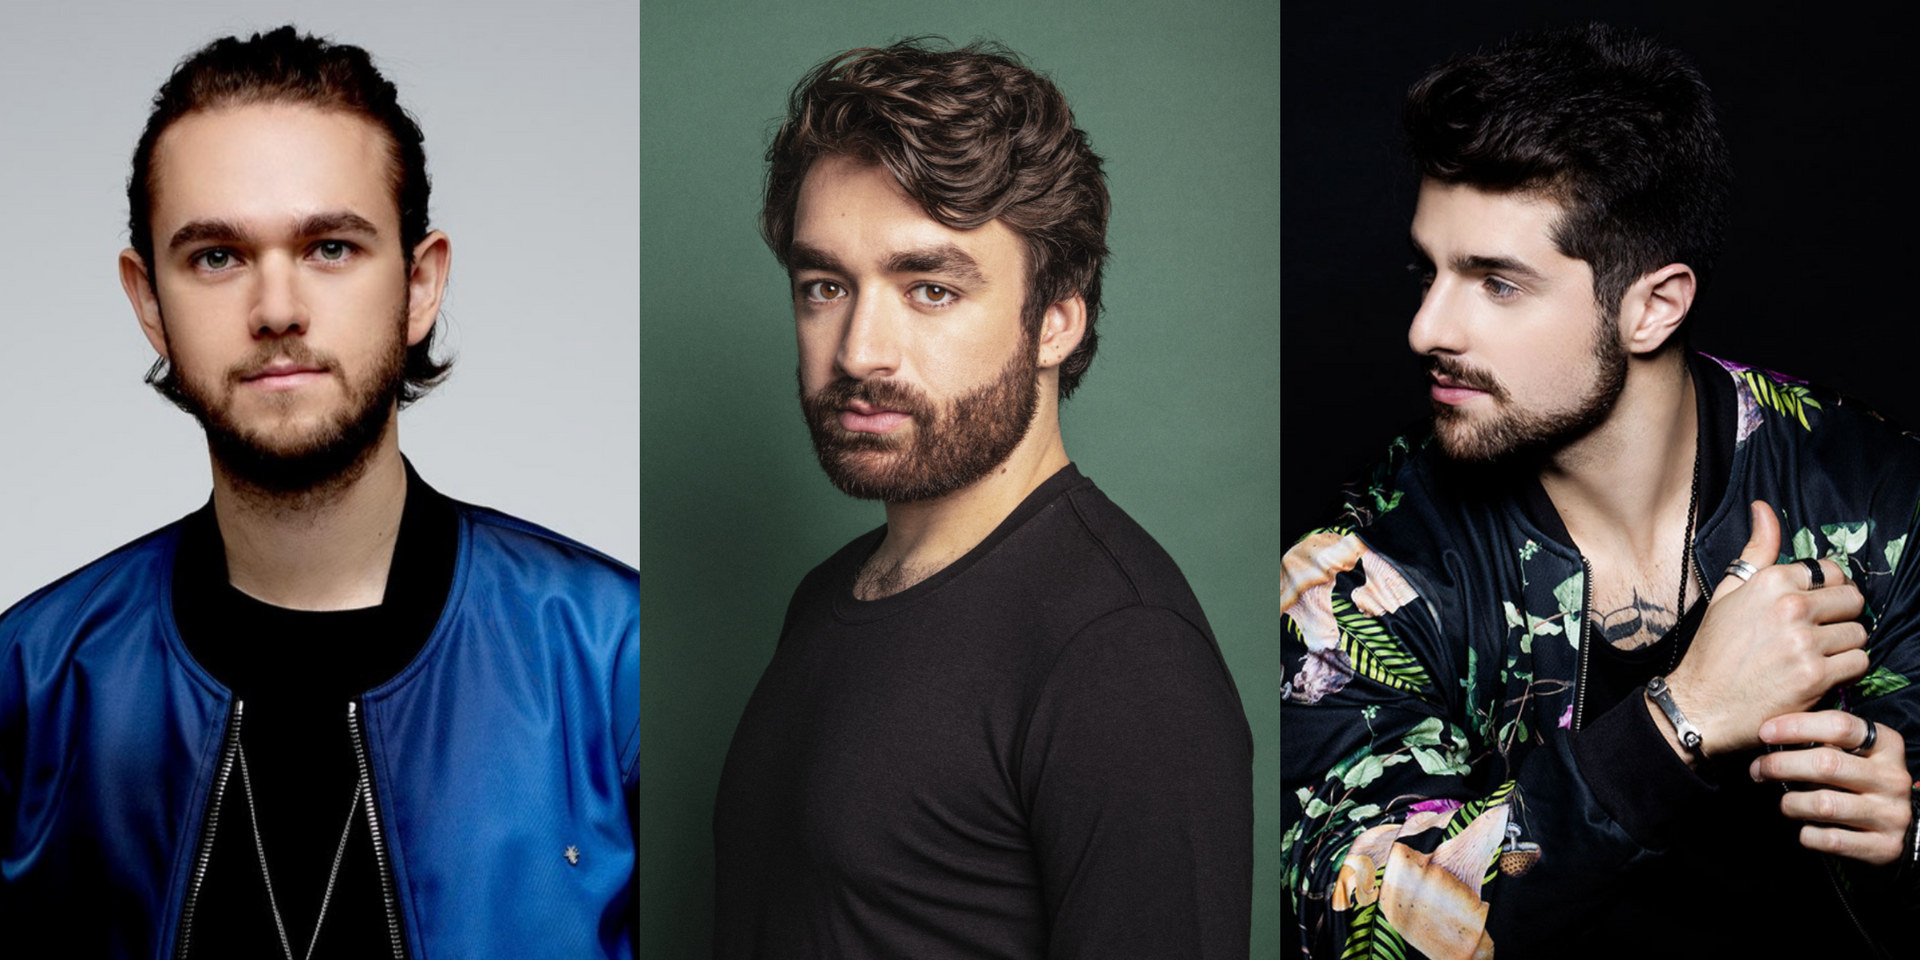 Legacy Music Festival announces 2nd wave line-up – Zedd, Oliver Heldens, Alok and more to perform